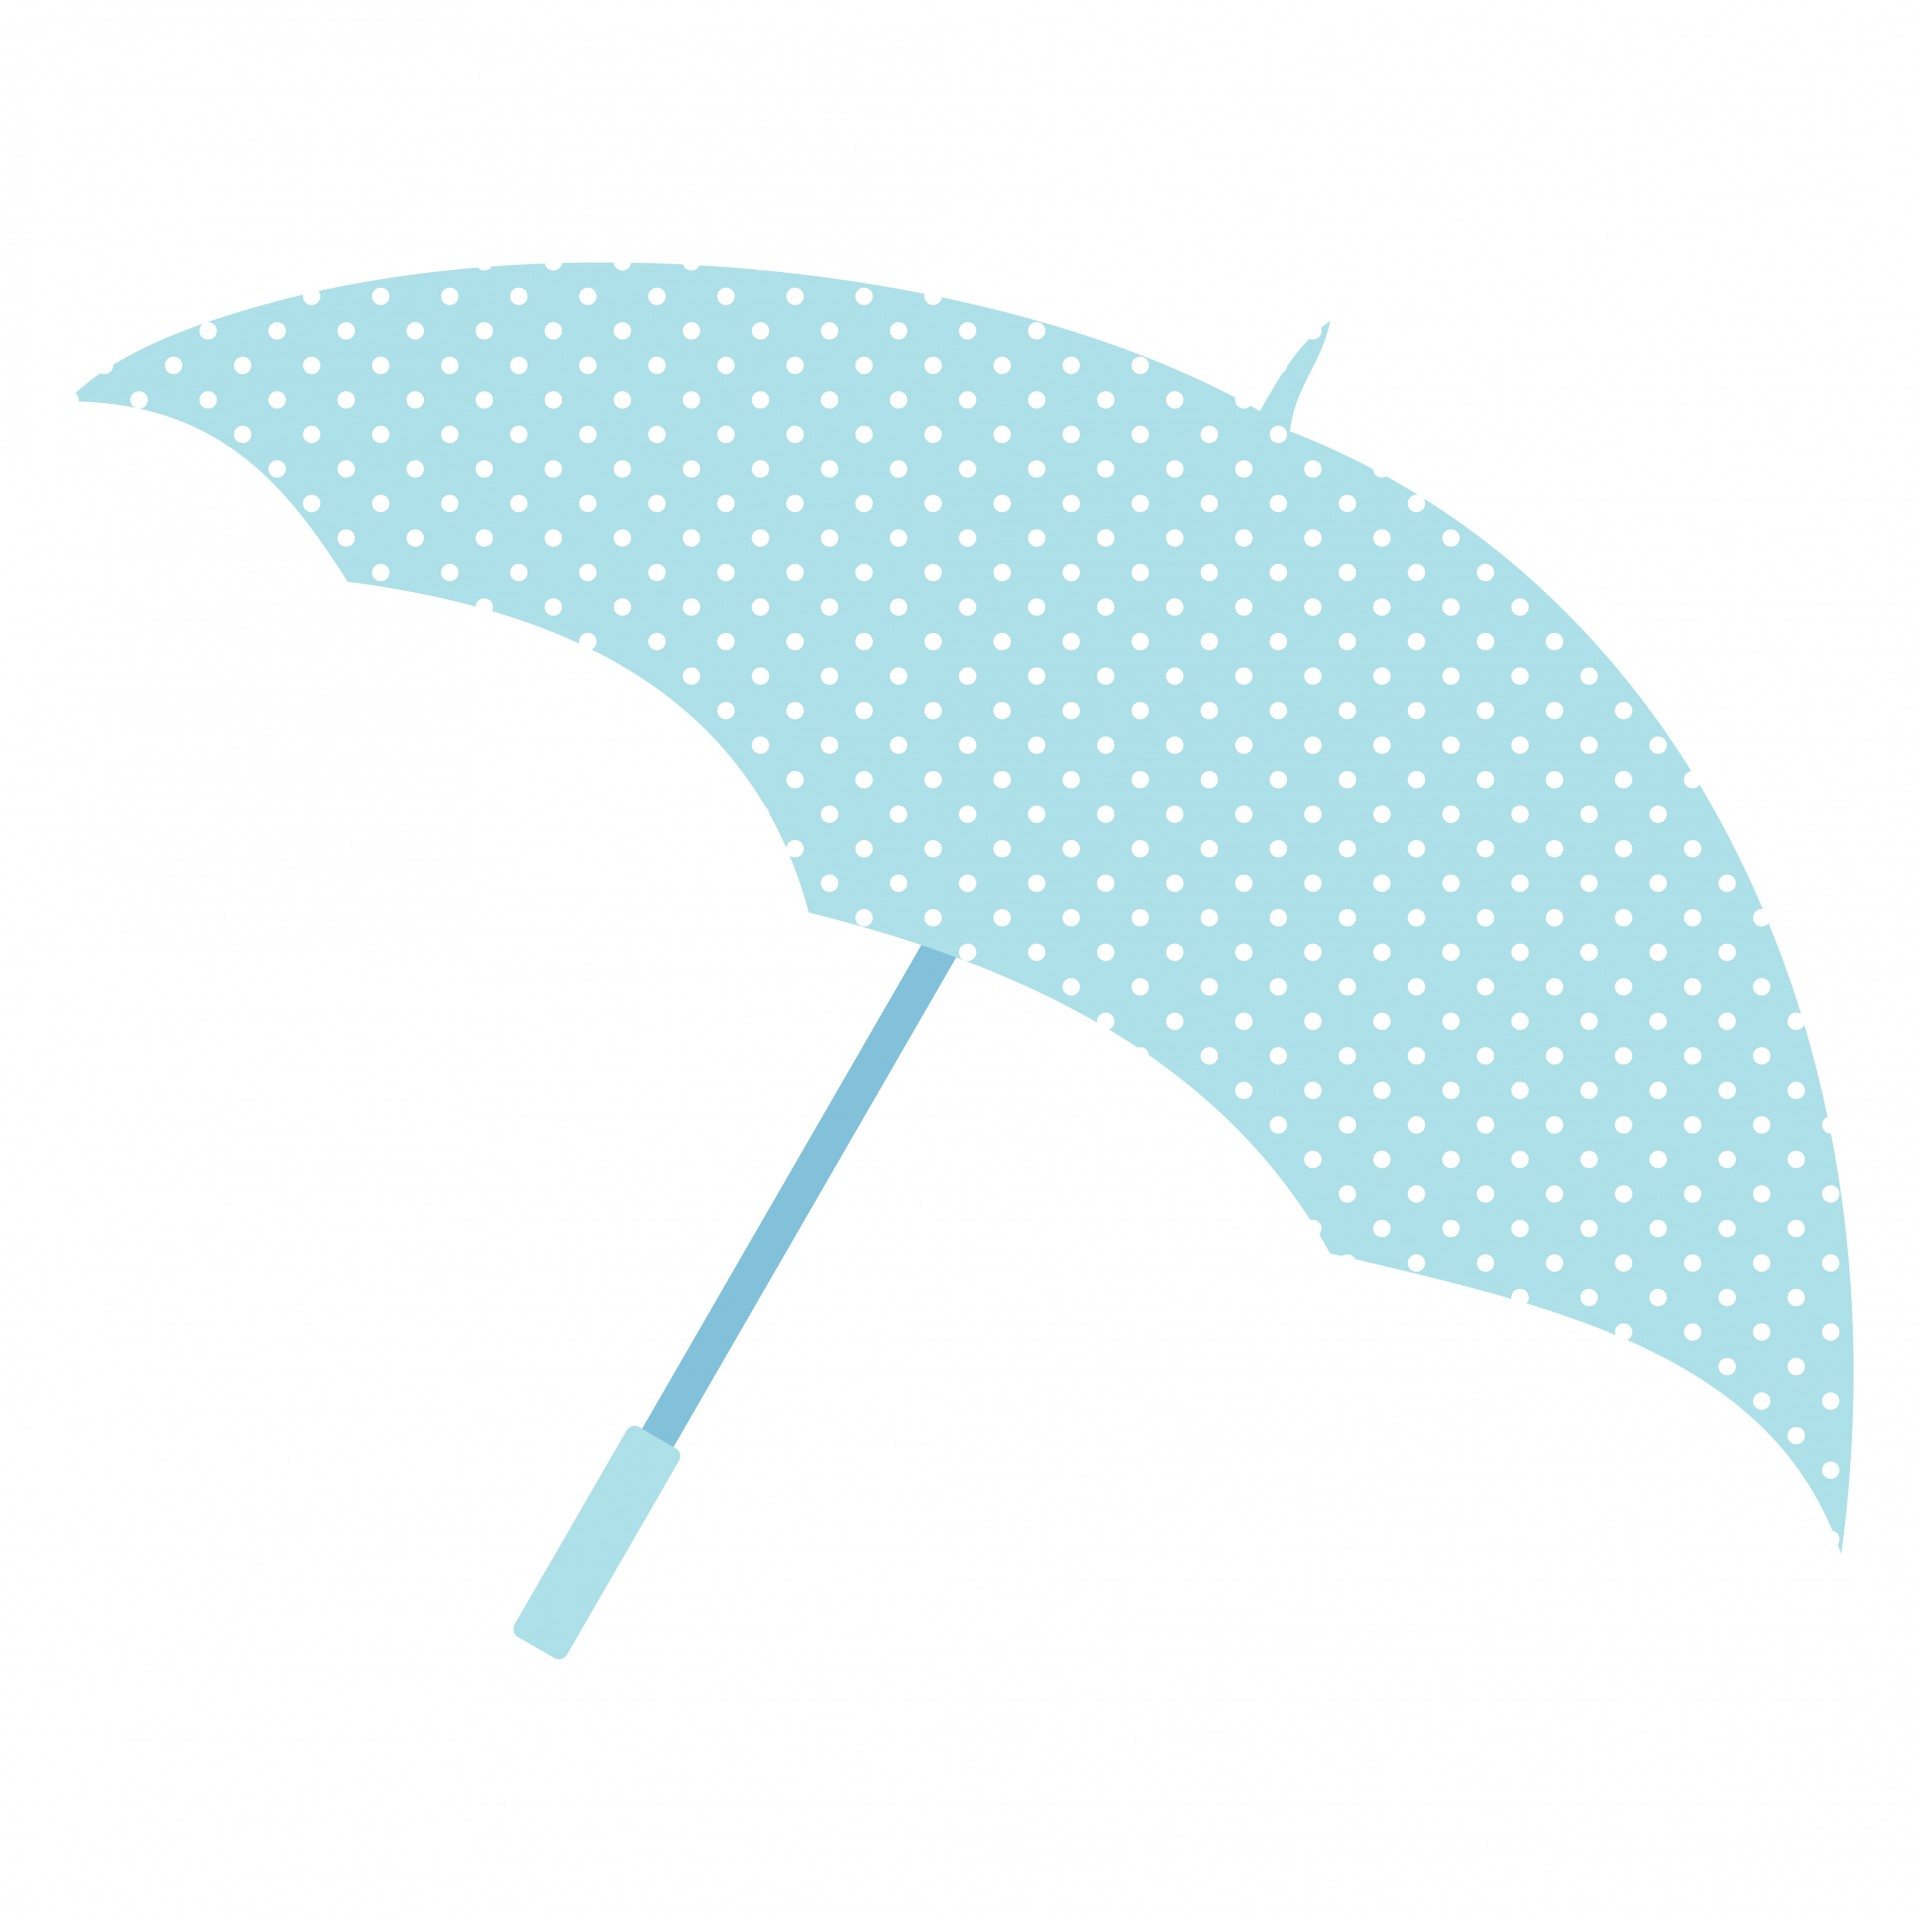 Aqua umbrella clipart images picture free download Umbrella,brolly,blue,white,polka dots - free photo from needpix.com picture free download